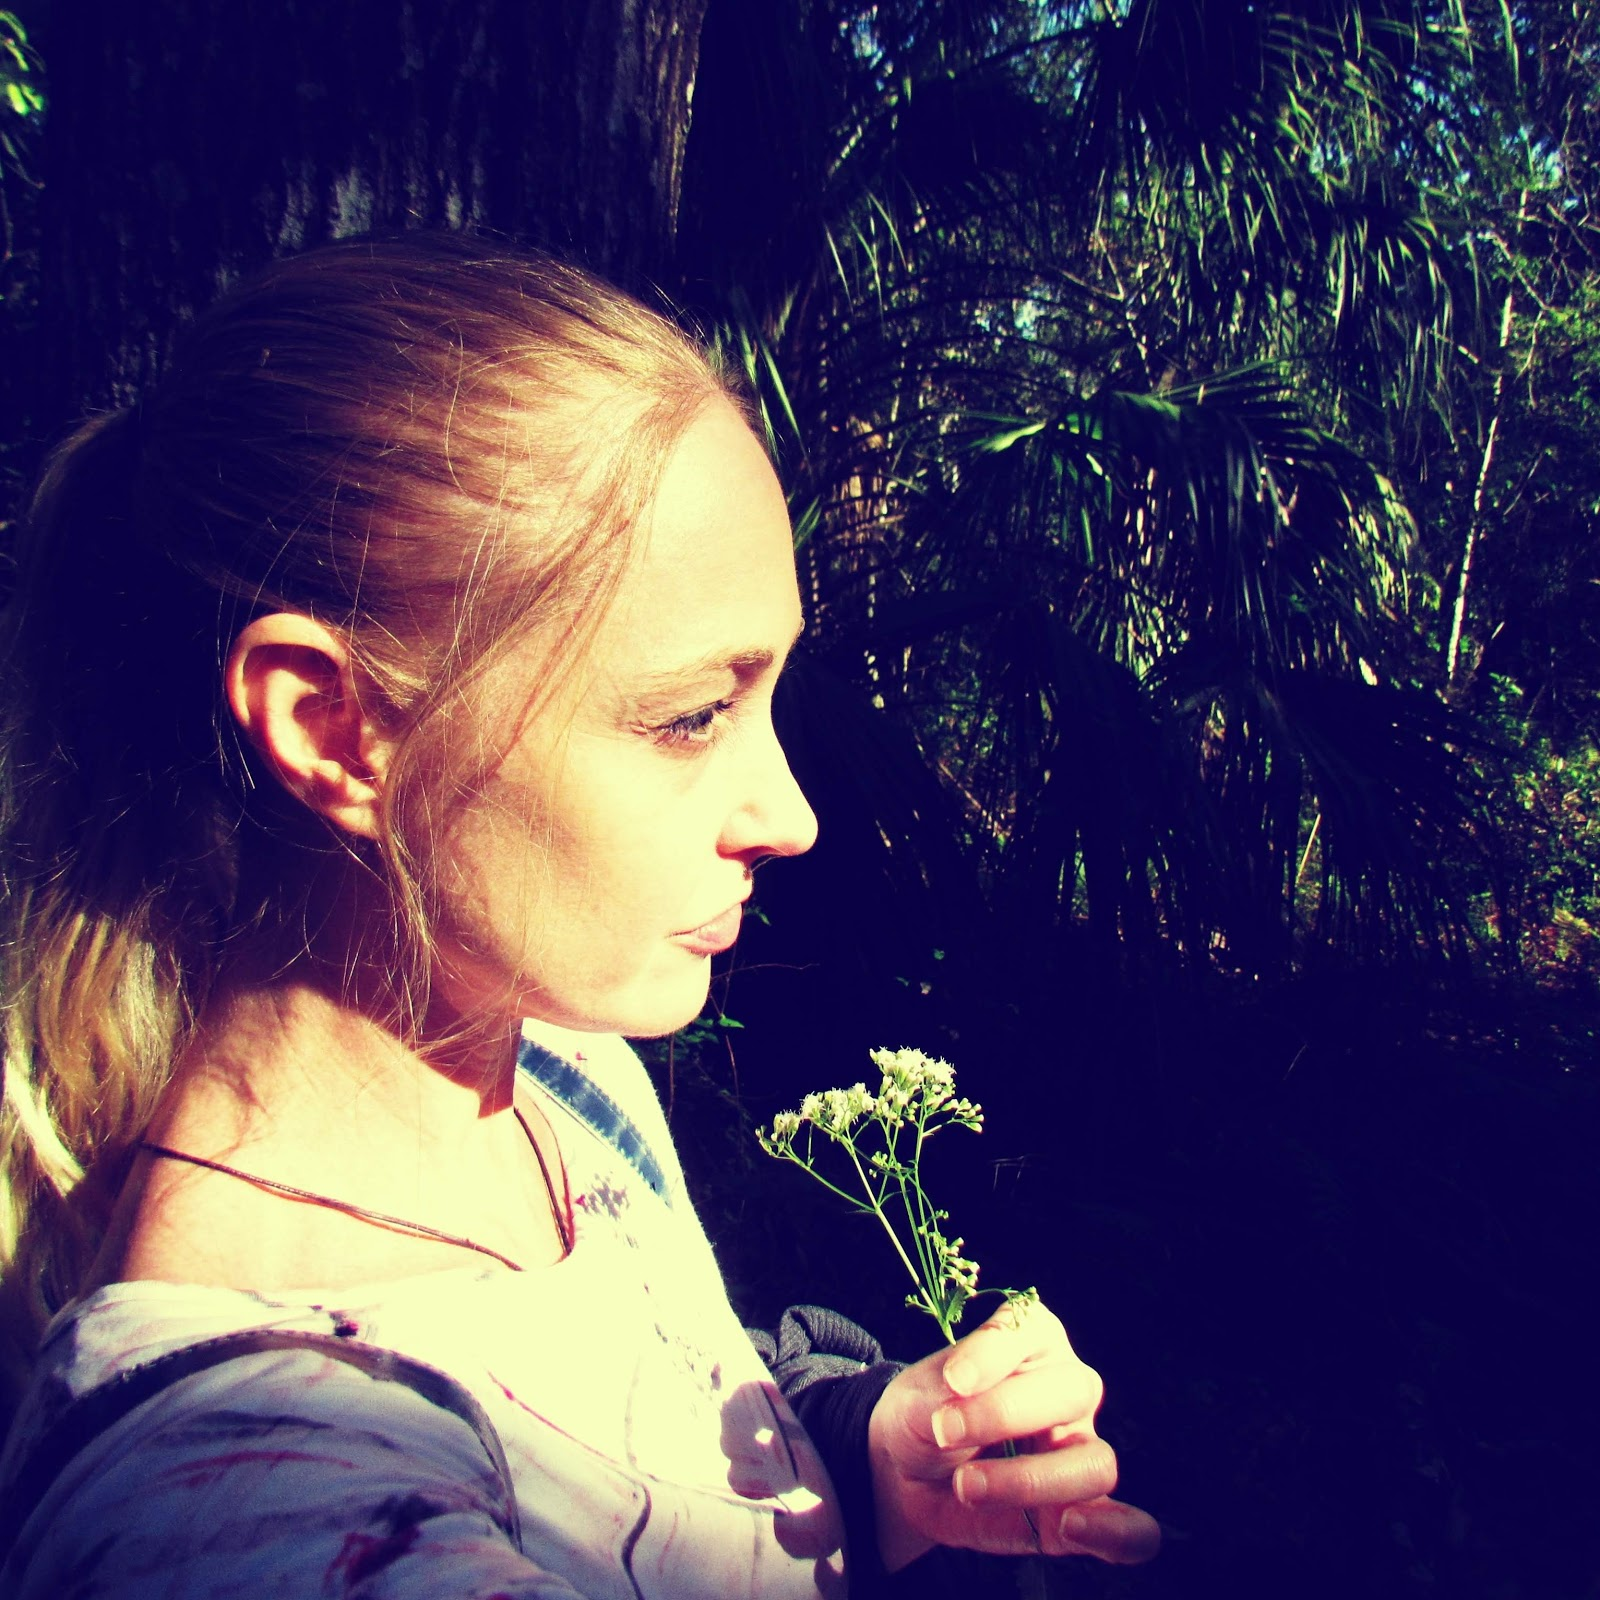 Self-portrait of a blonde woman holding a flower while hiking in an enchanted forest in Florida